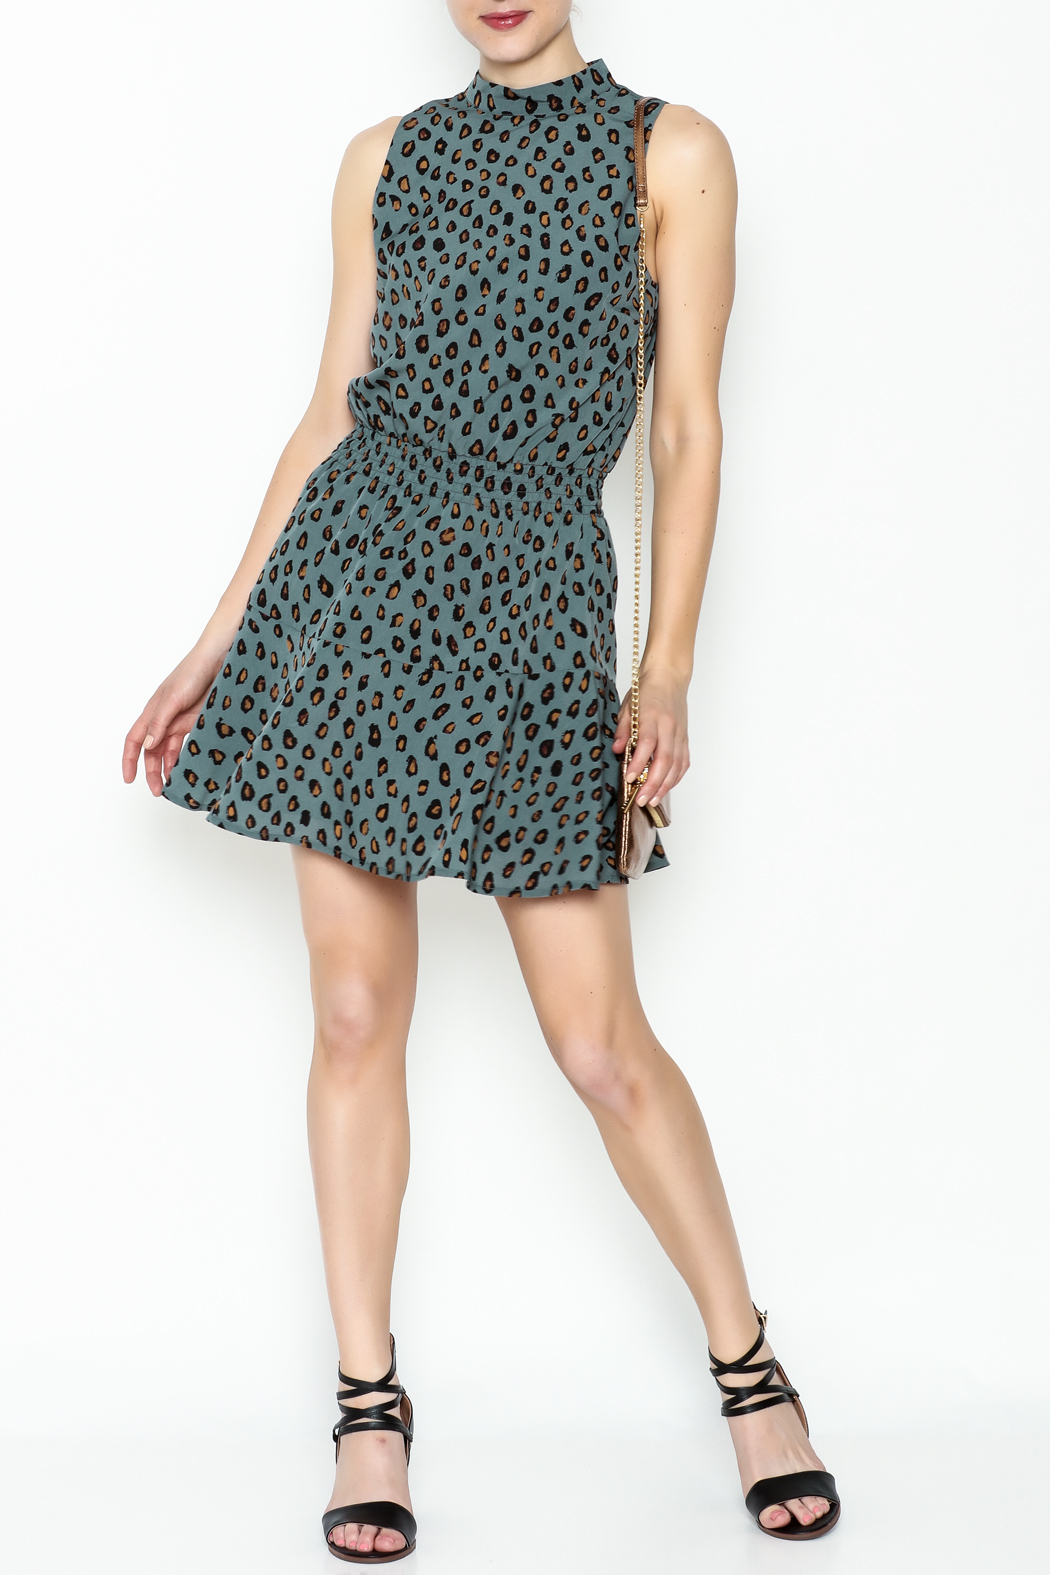 Cupcakes and Cashmere Waist Leopard Dress - Side Cropped Image